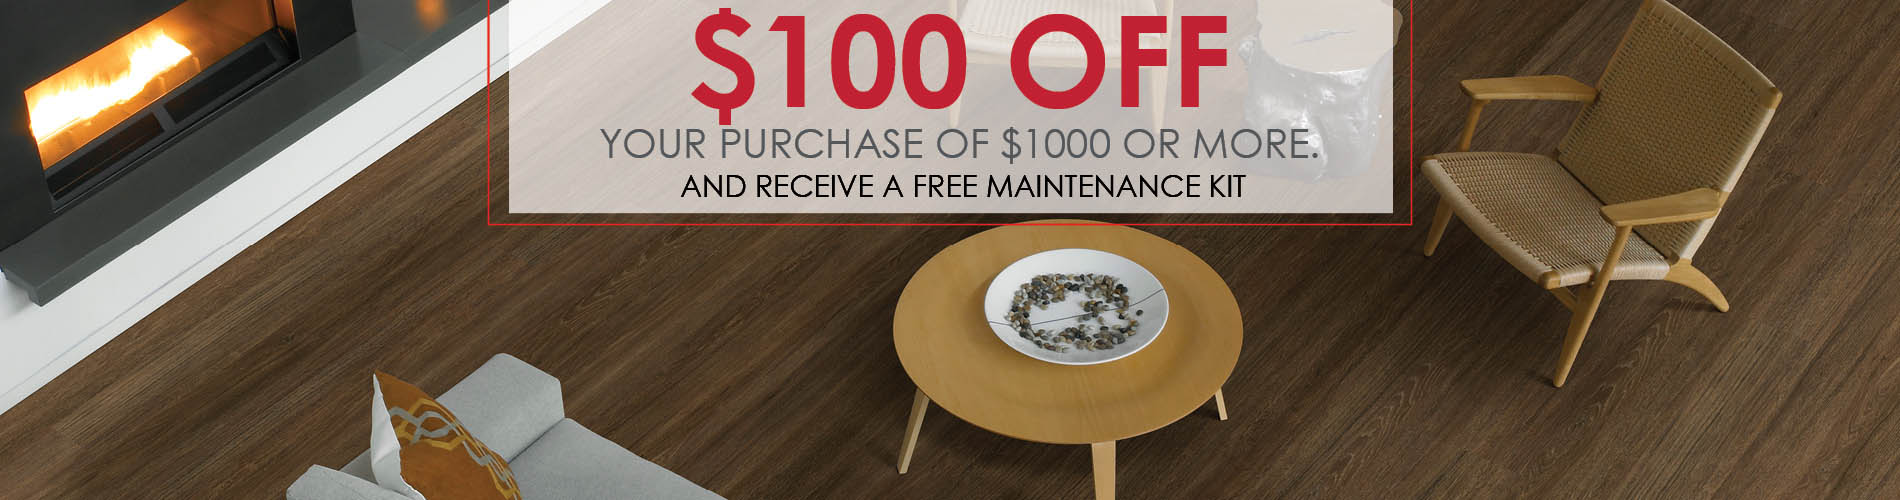 $100 off your purchase of $1000 or more and receive a free maintenance kit this month at Anniston Floors To Go!